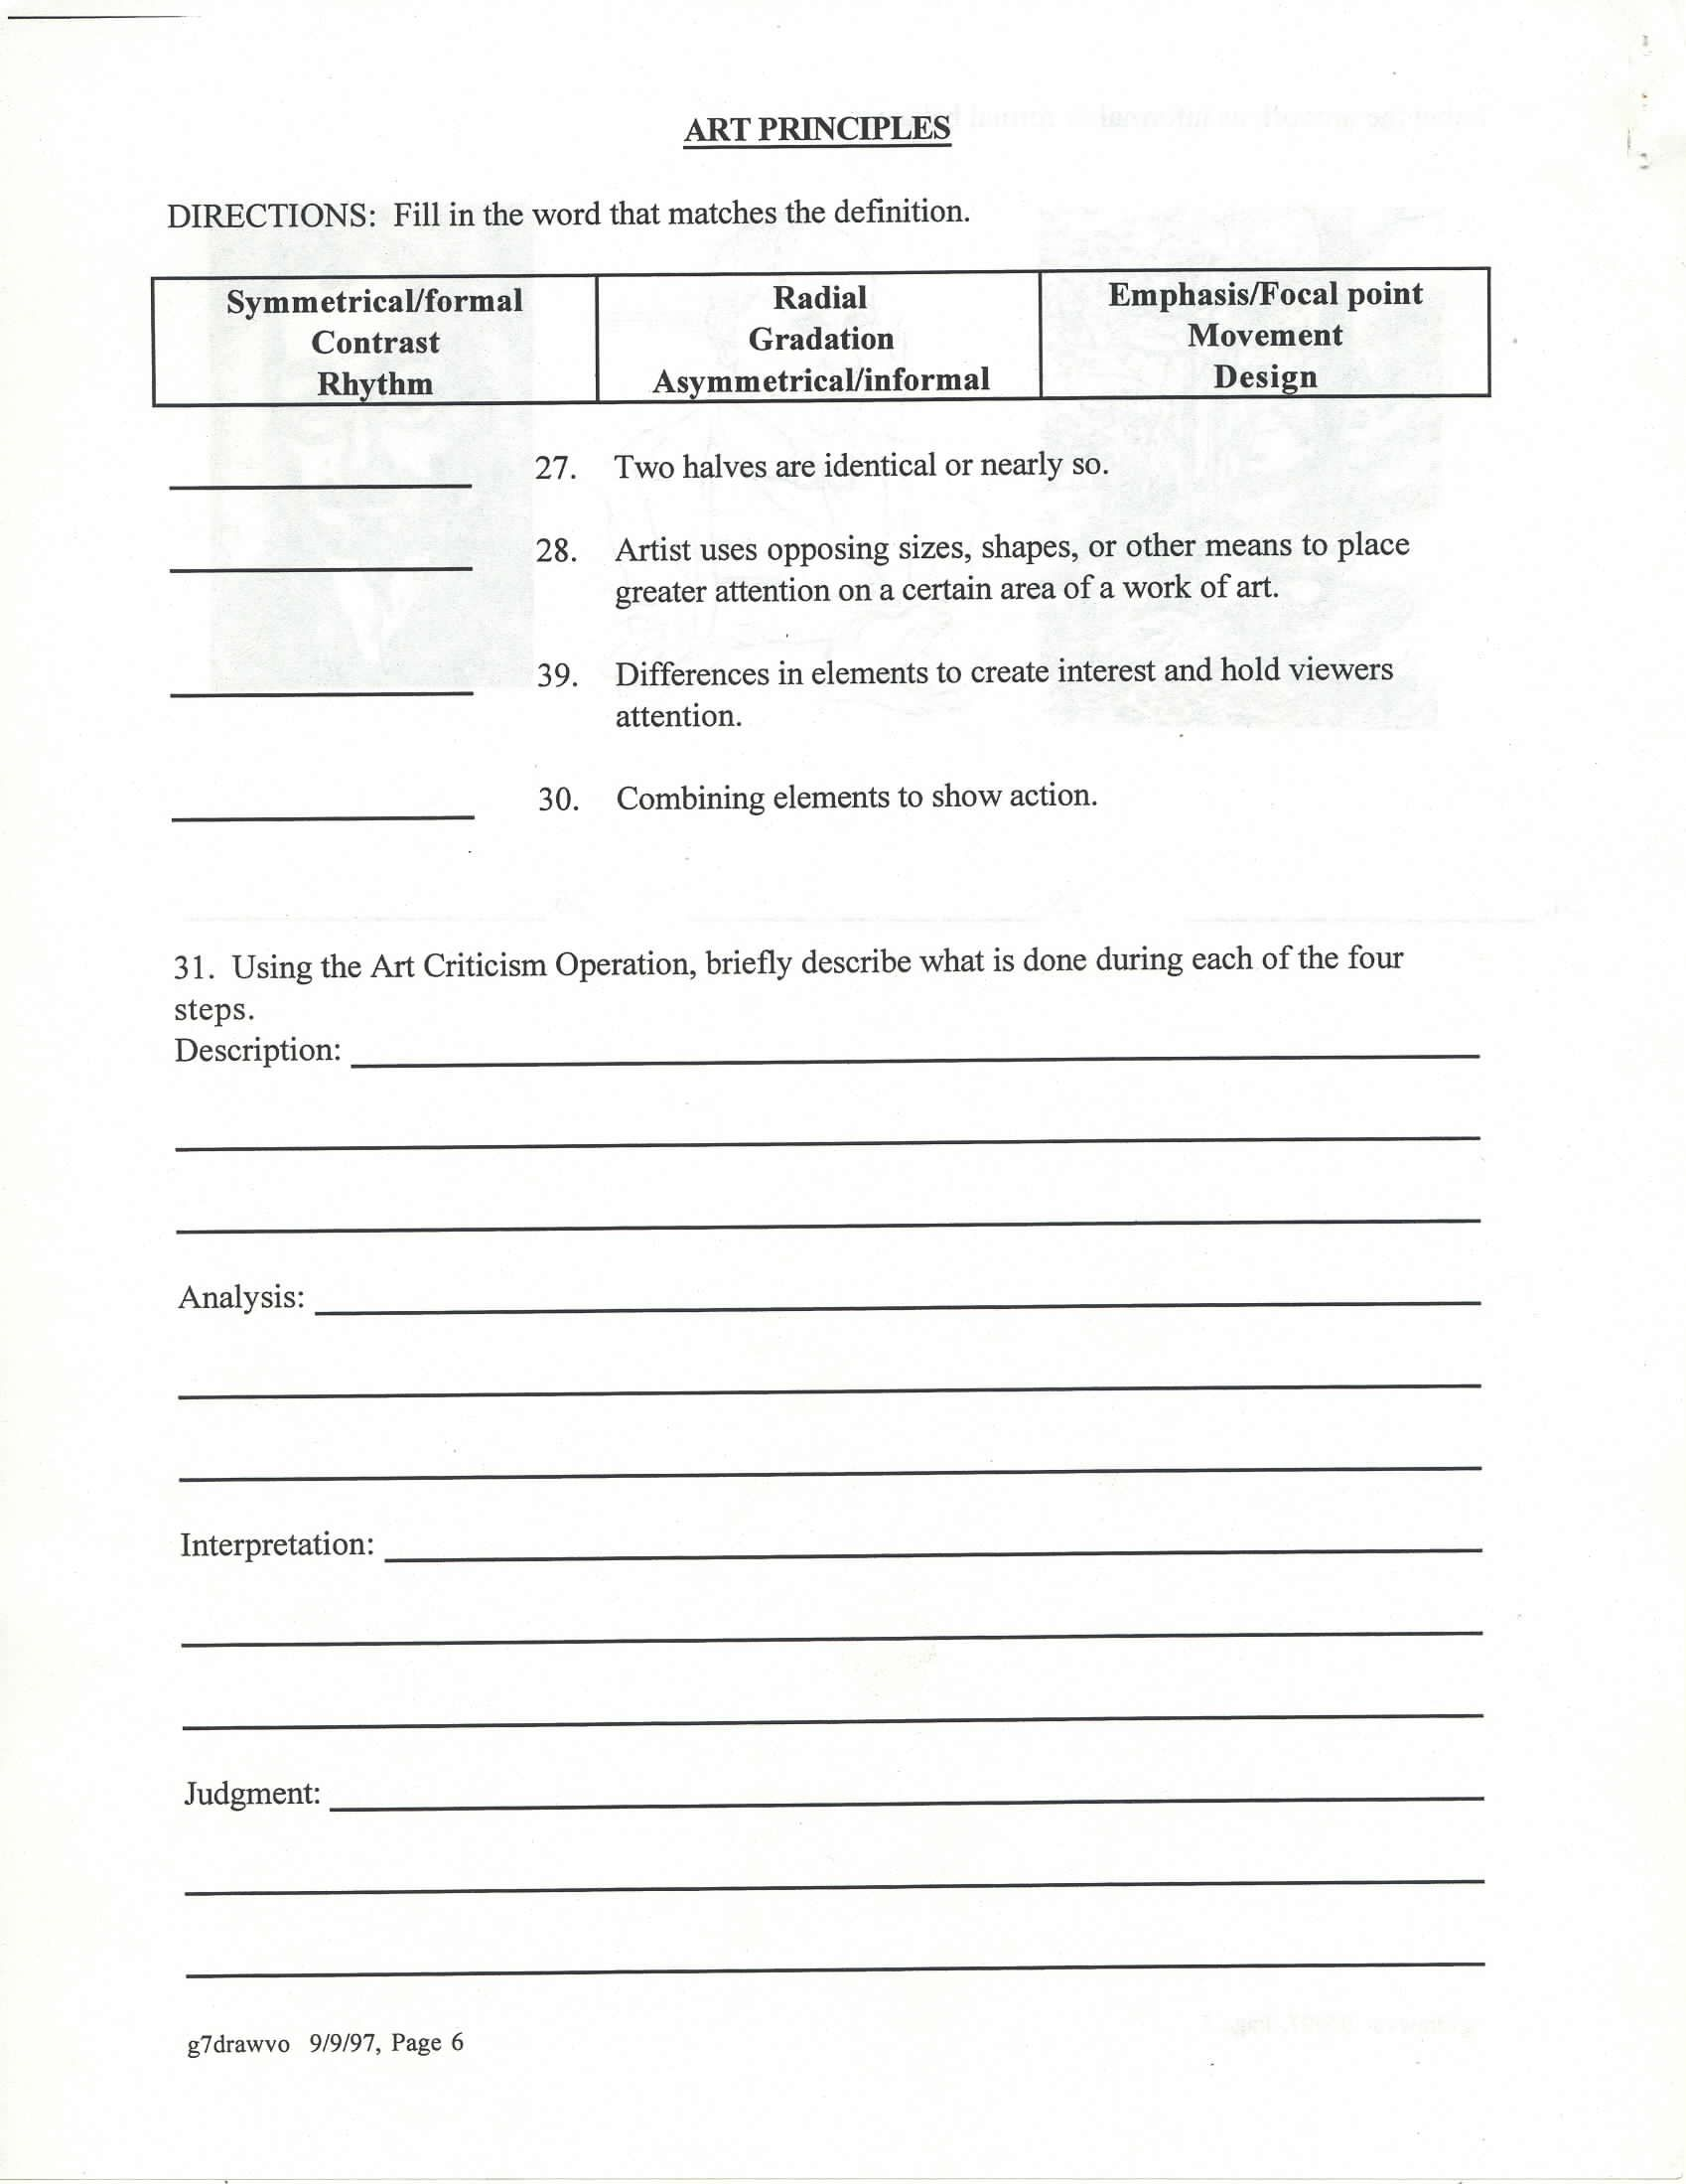 worksheet Elements And Principles Of Art Worksheet elementsprinciples art handouts pinterest elements elementsprinciples